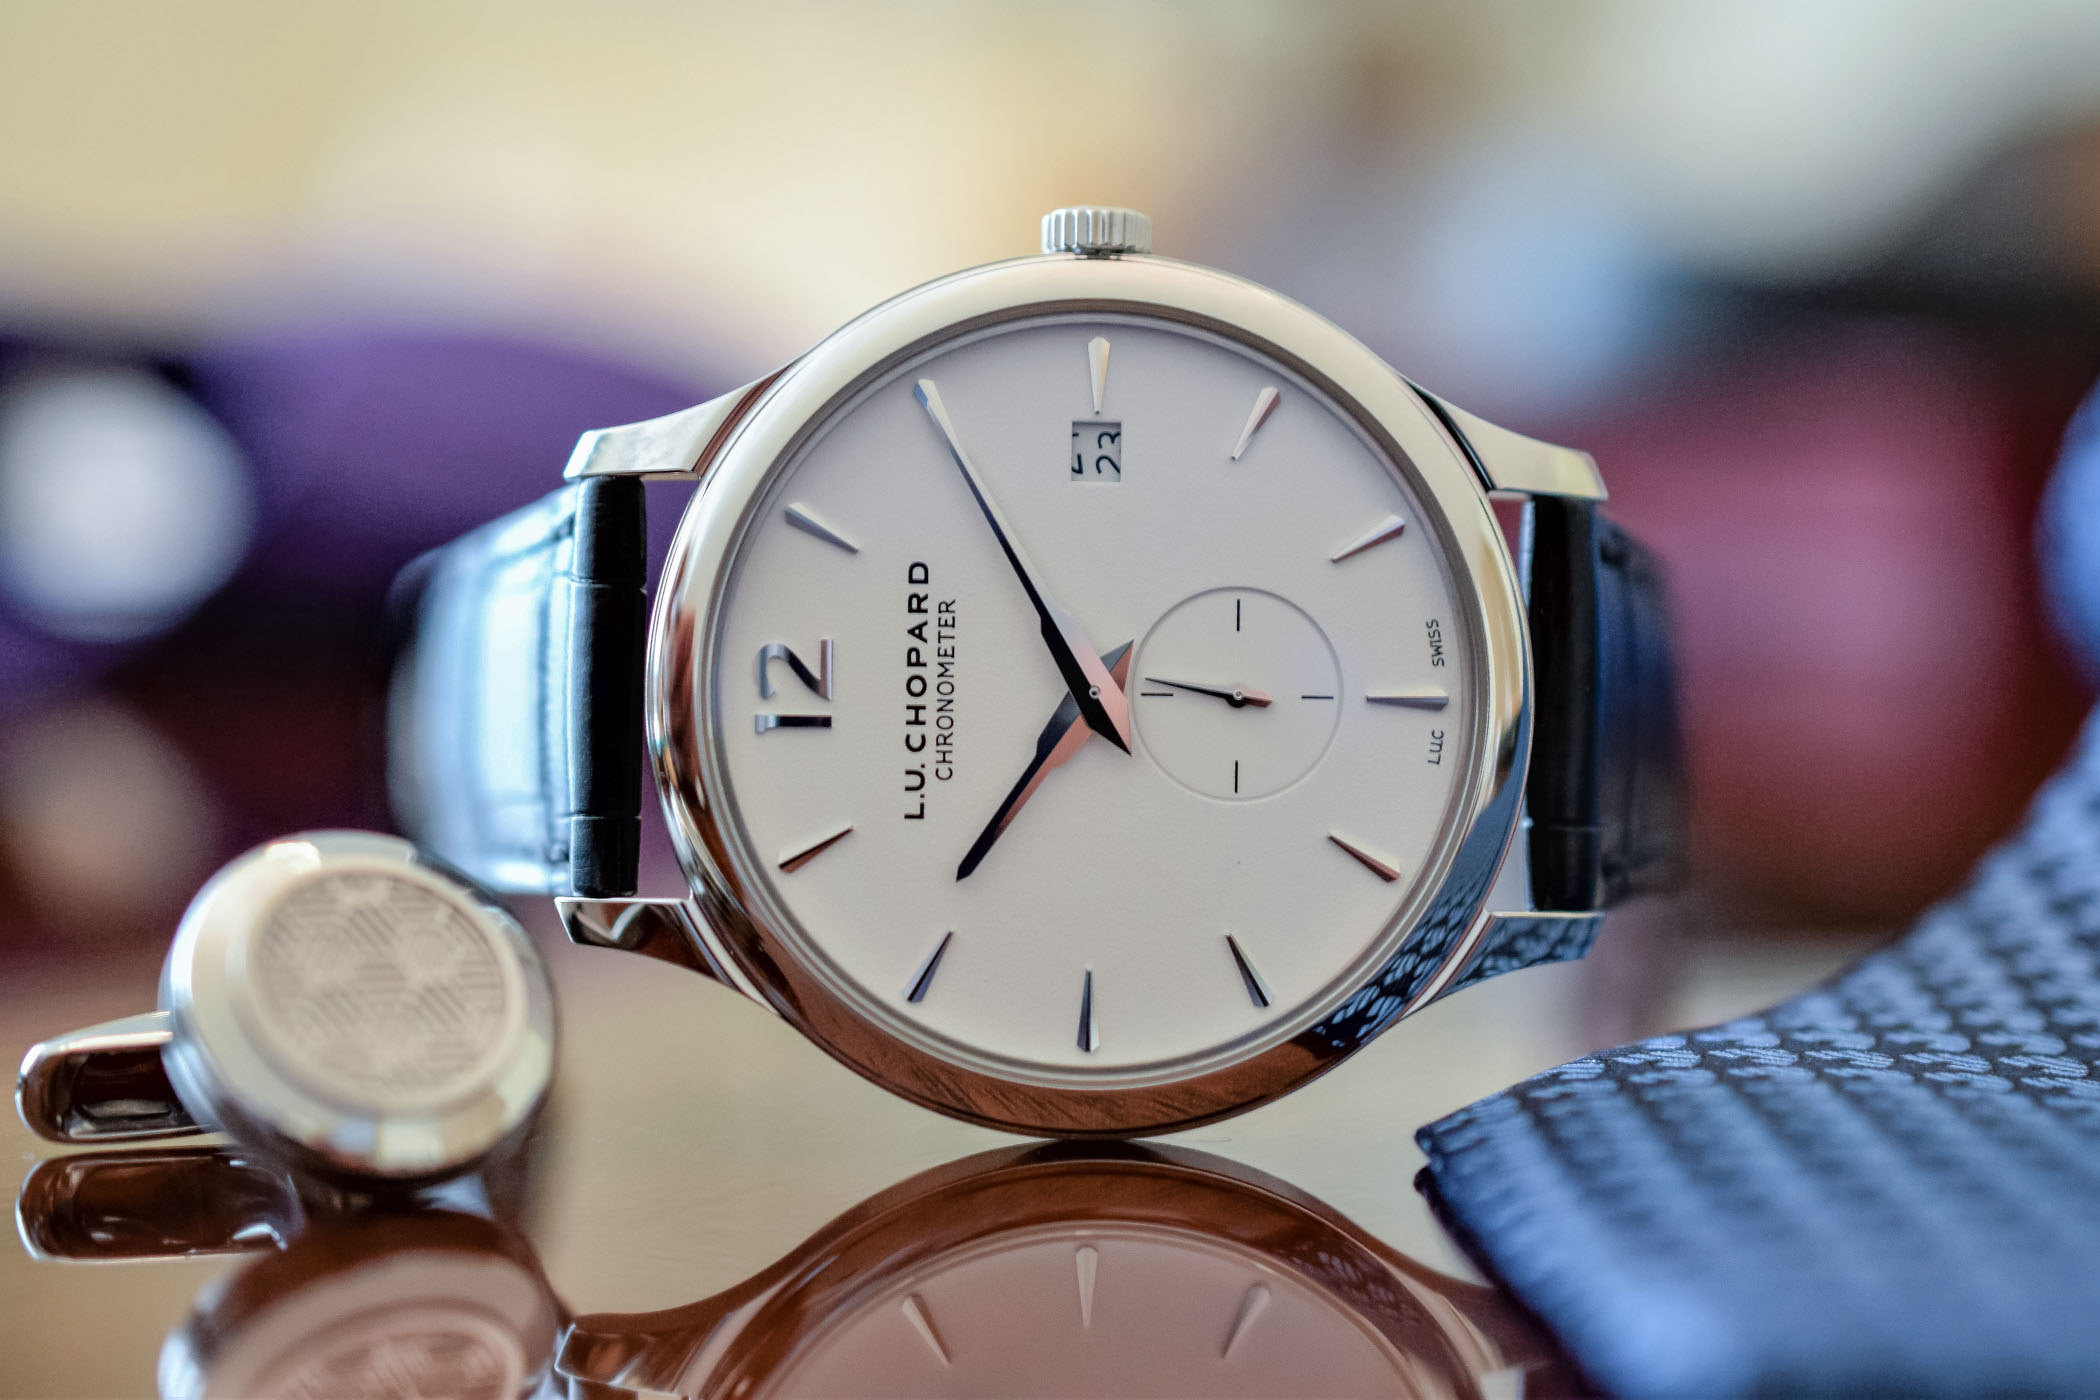 Chopard LUC XPS facelift 2017